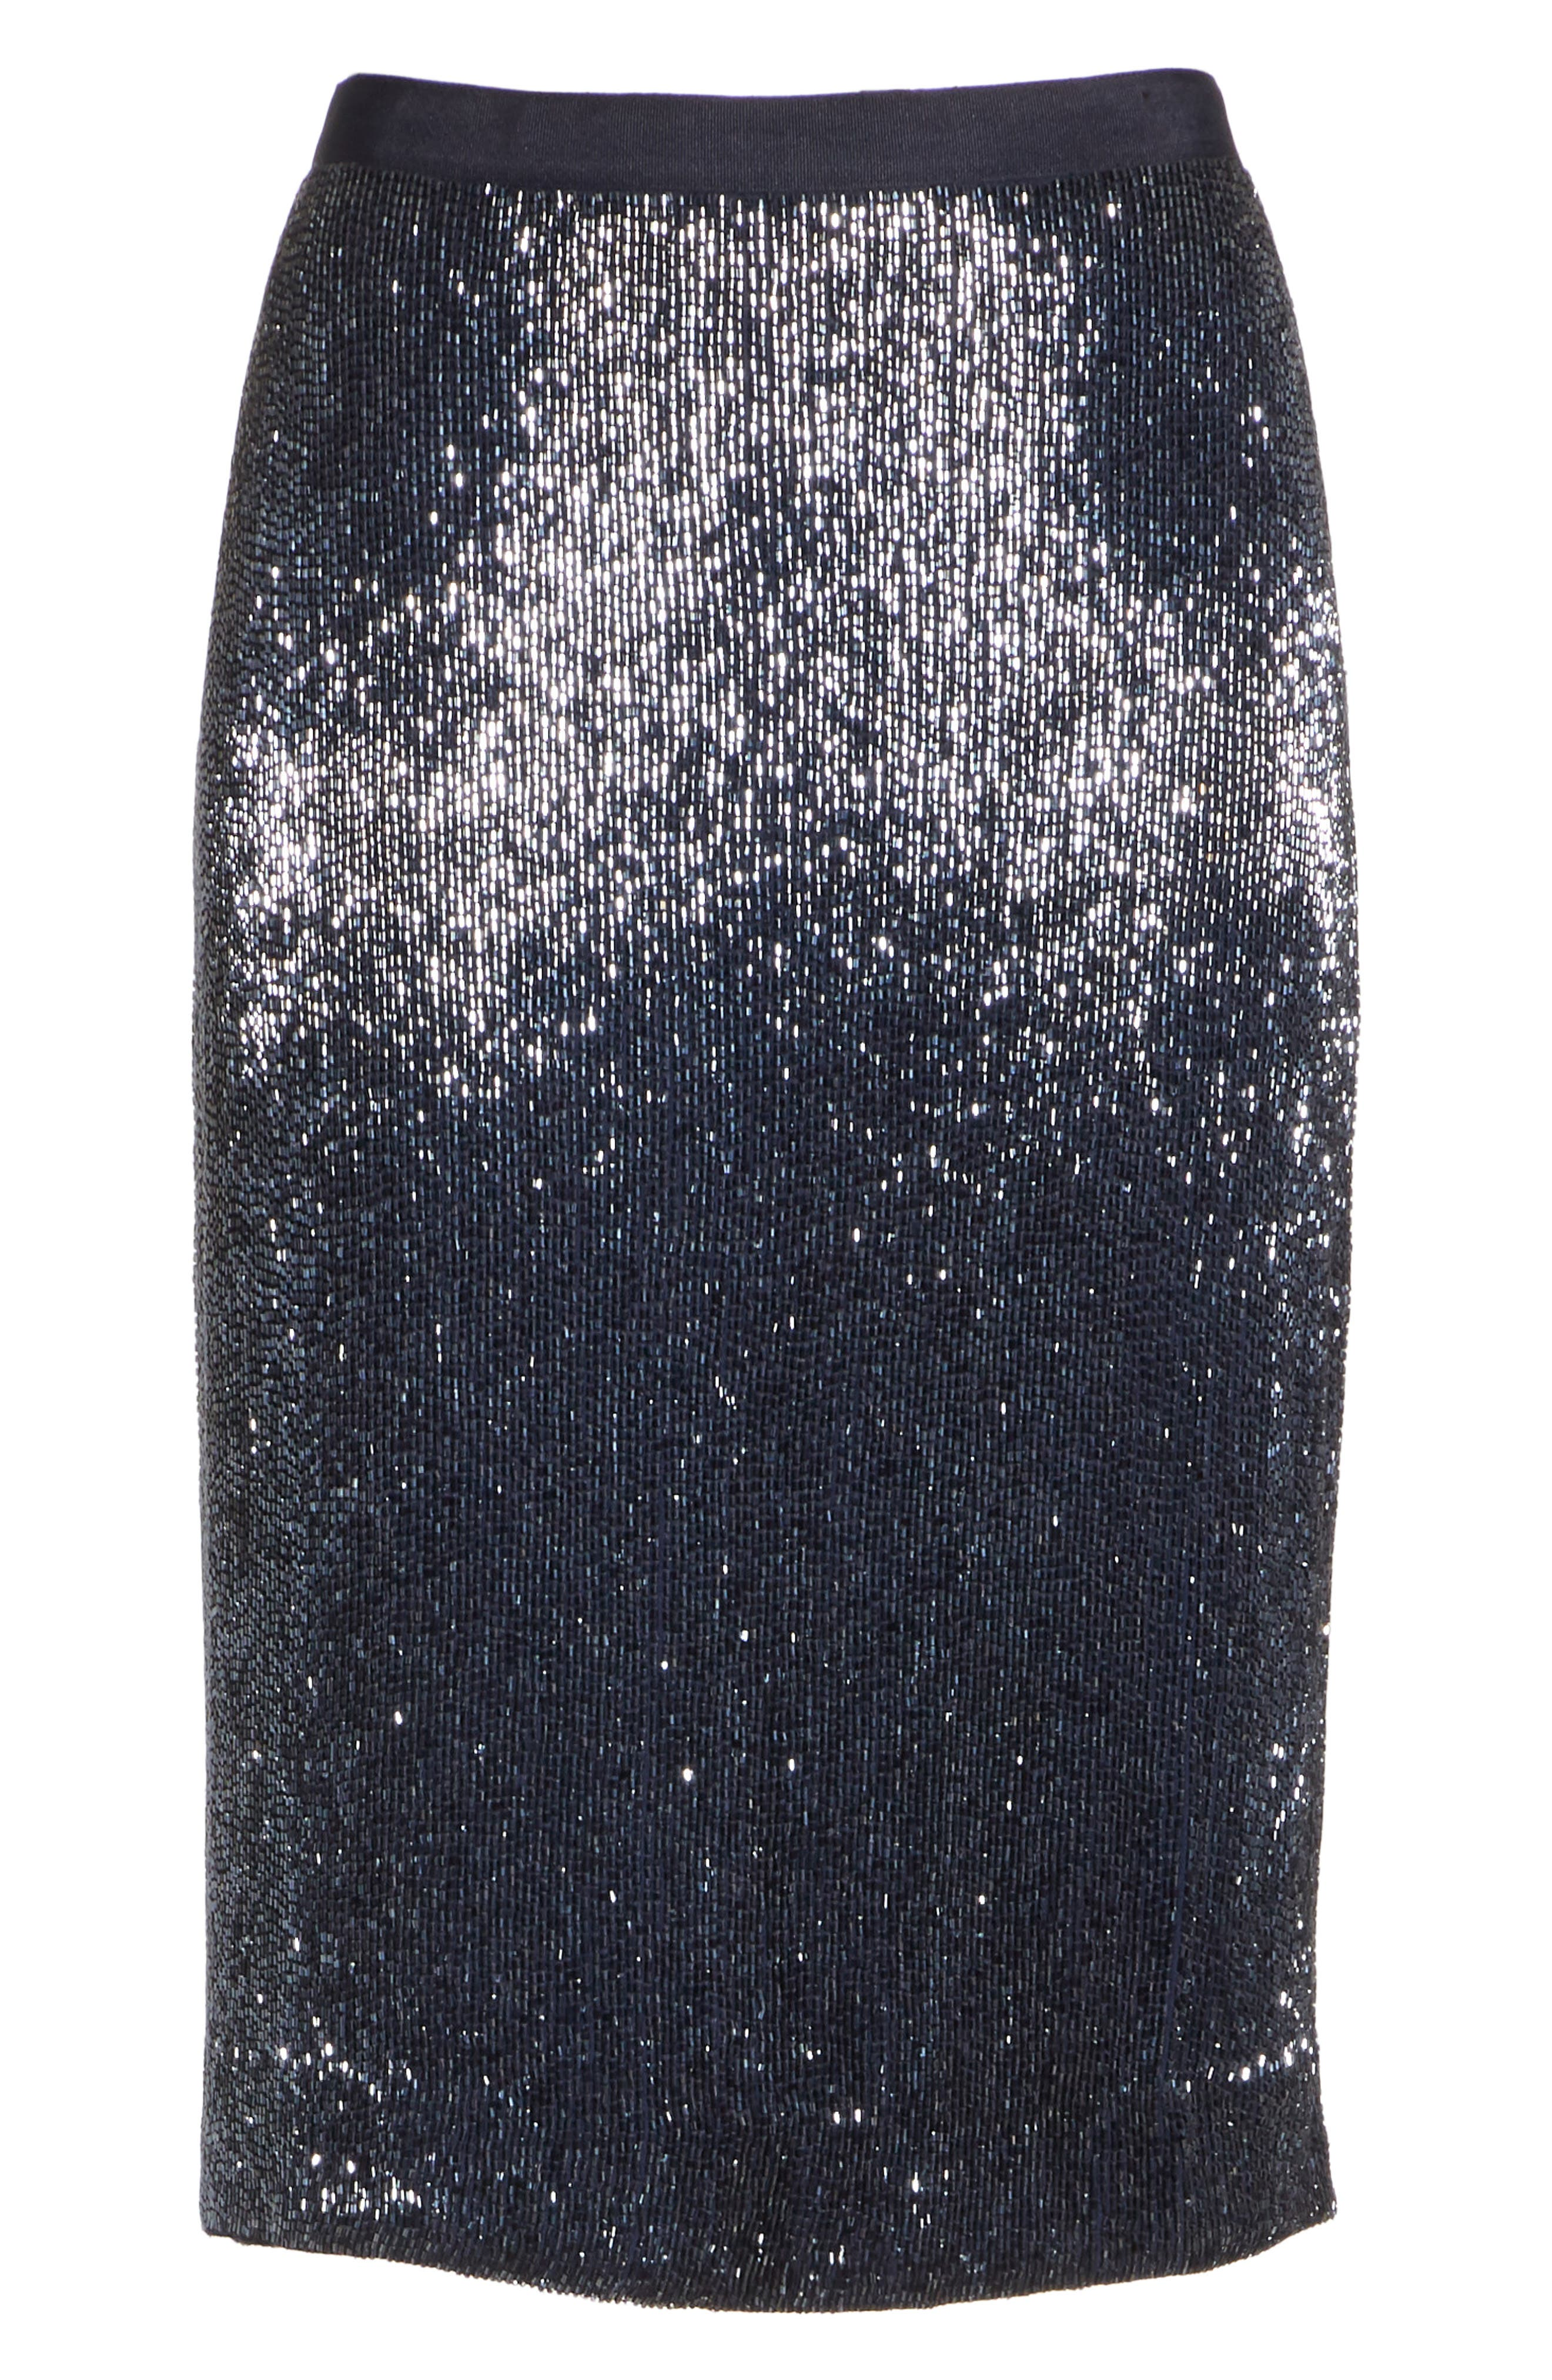 Edryce Beaded Pencil Skirt,                             Alternate thumbnail 7, color,                             Dark Navy